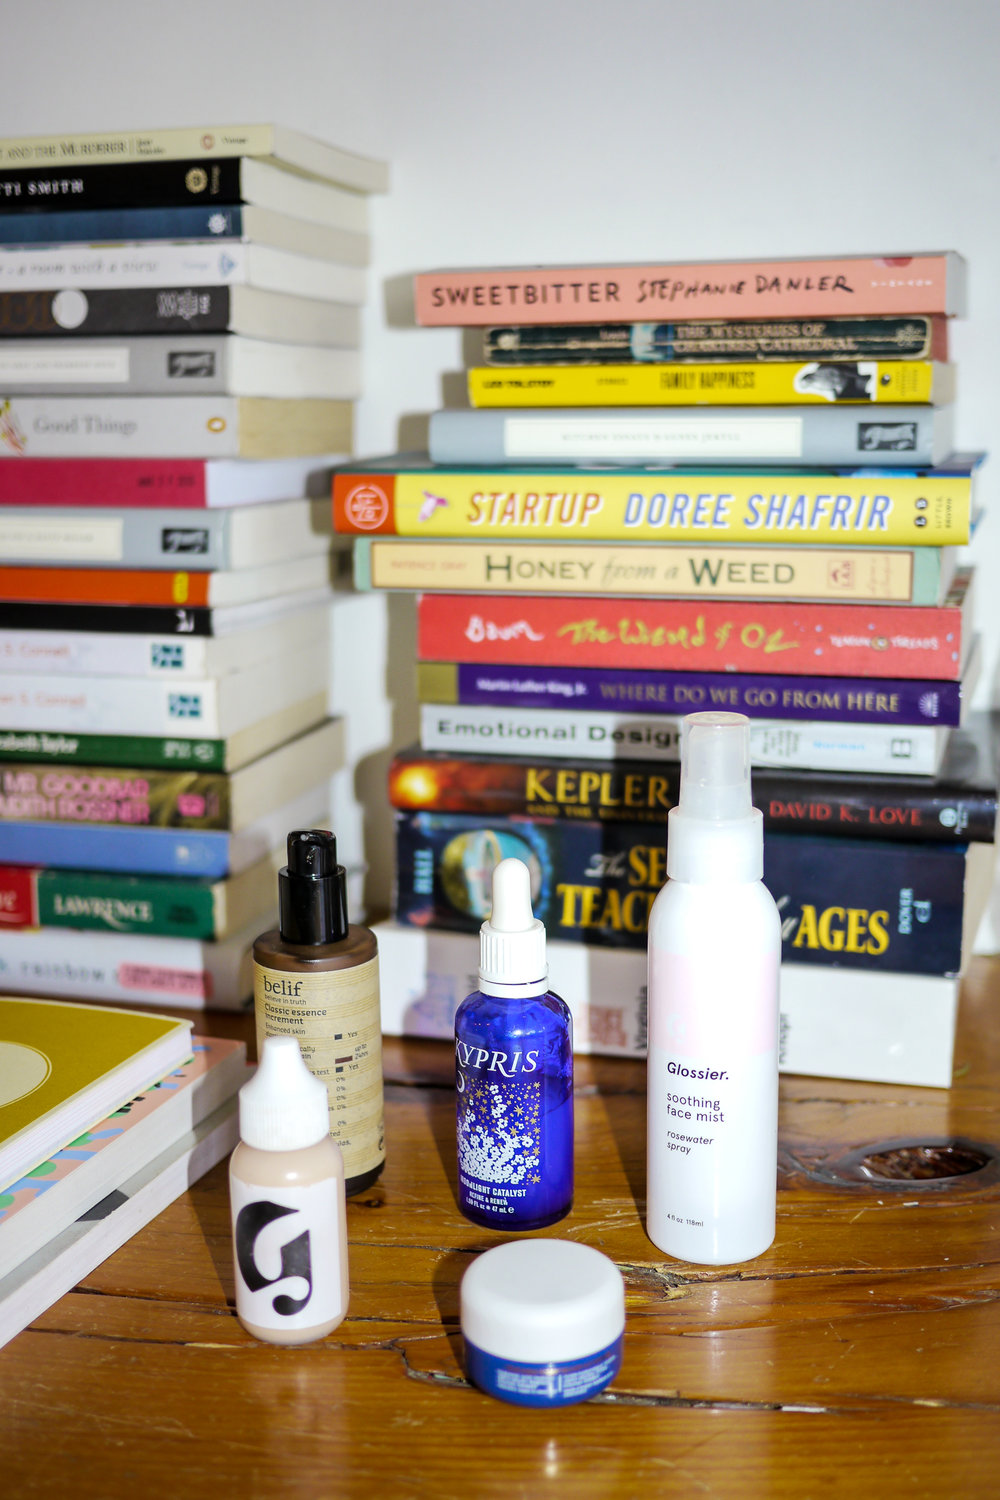 Some of Angie's favorite skincare products